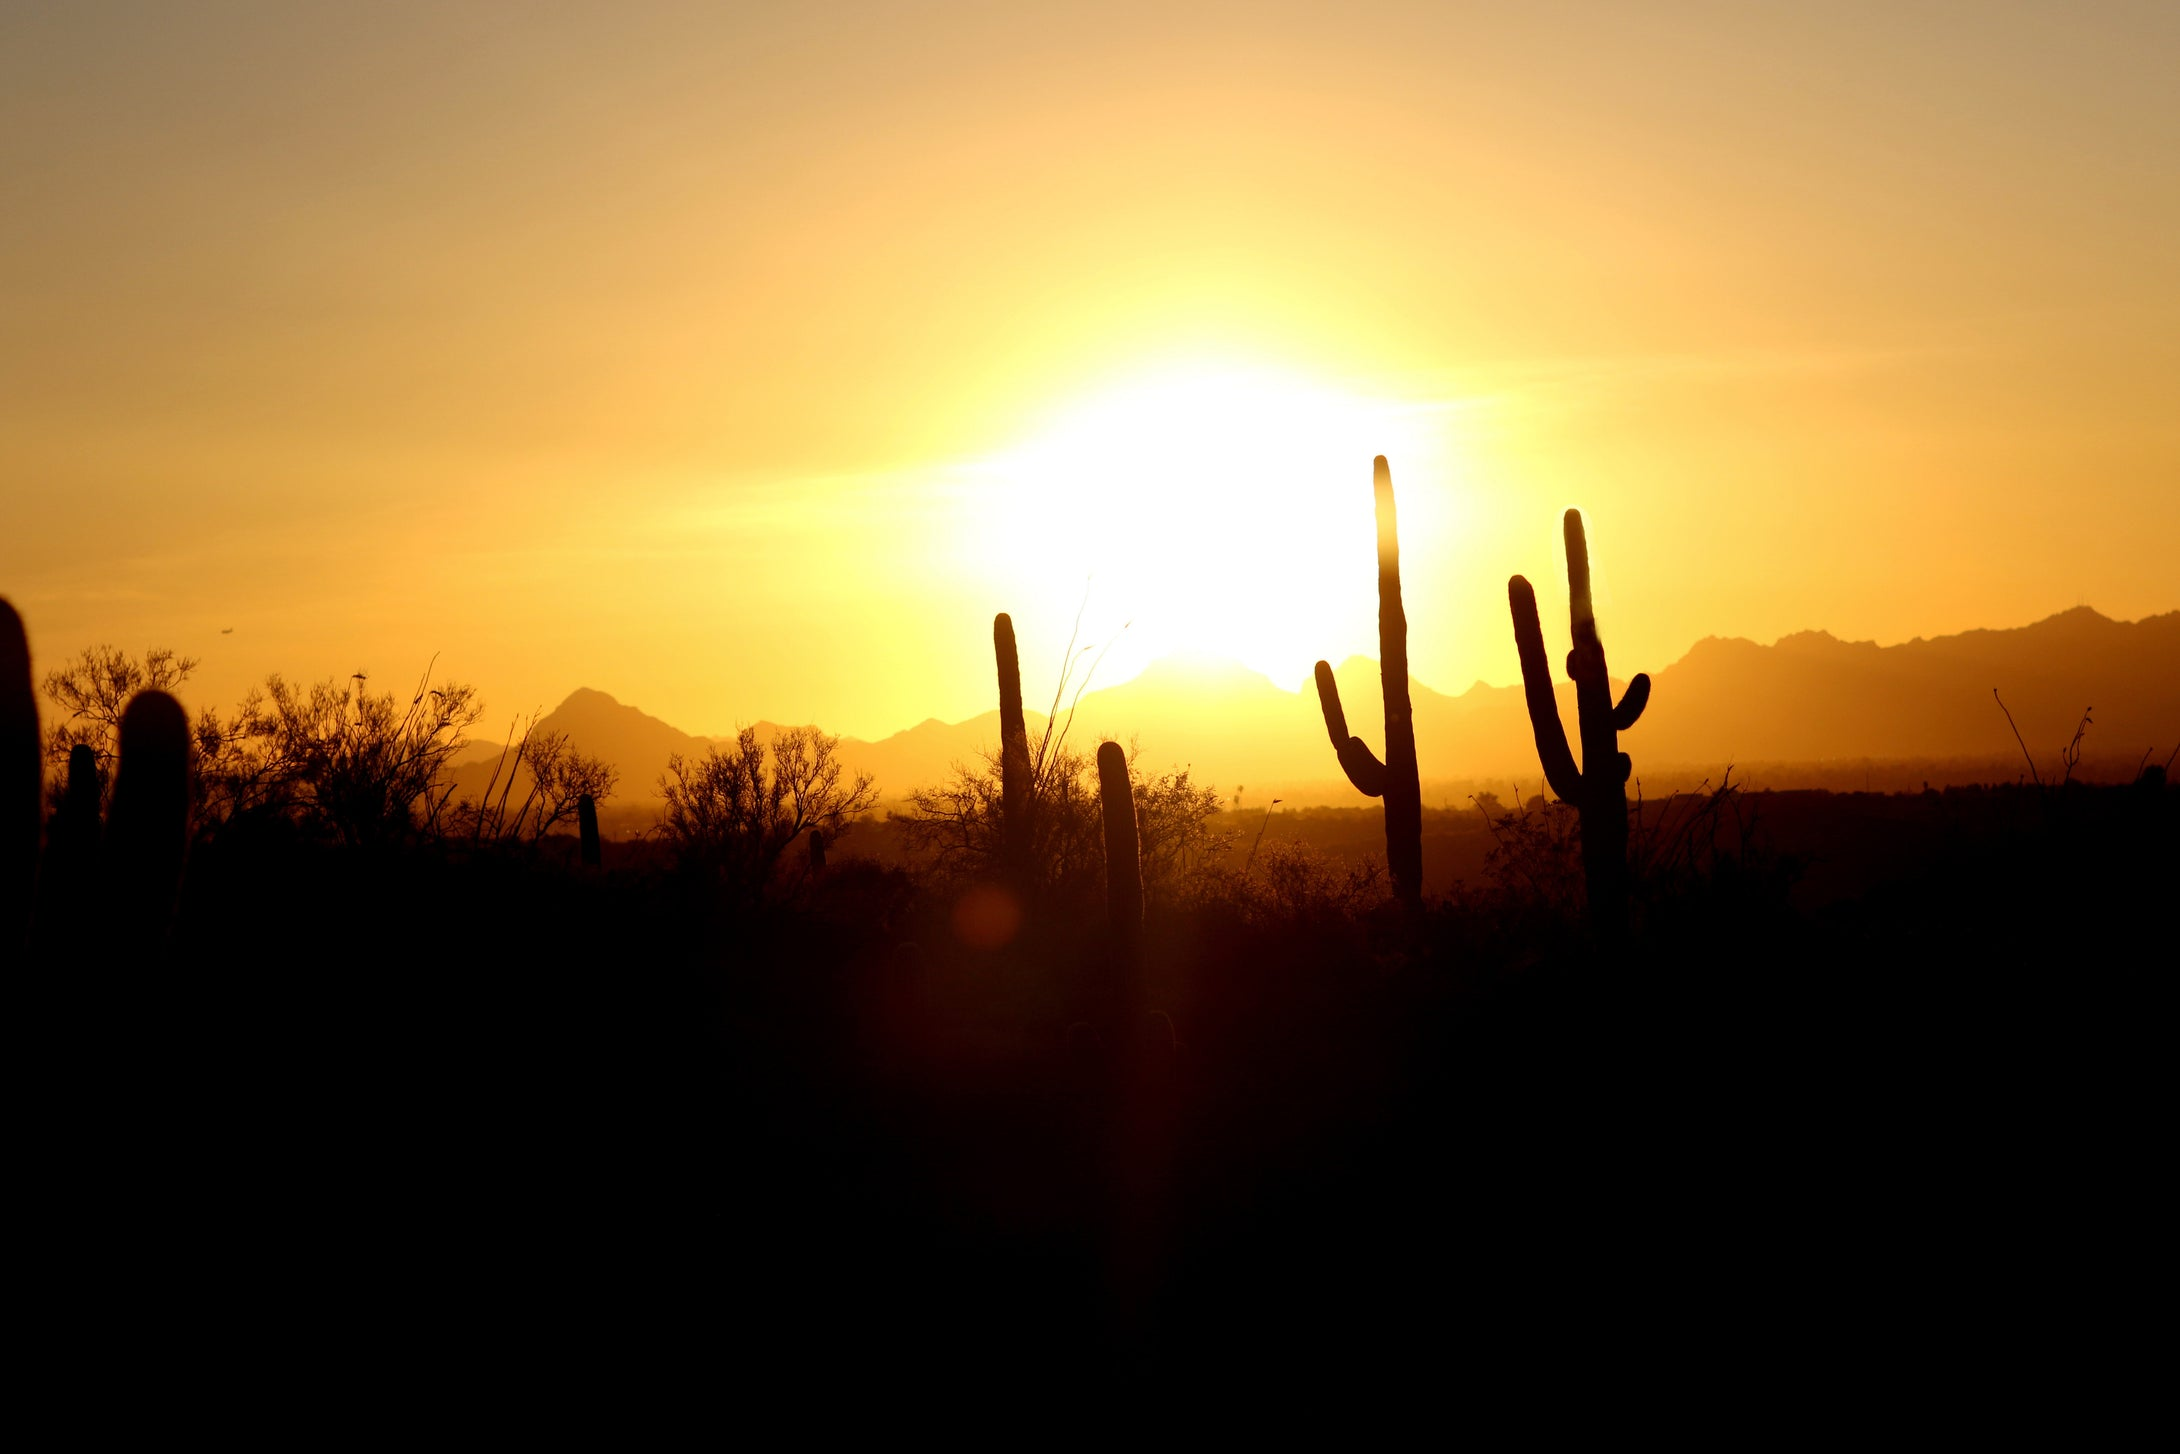 The Cactus Sunset